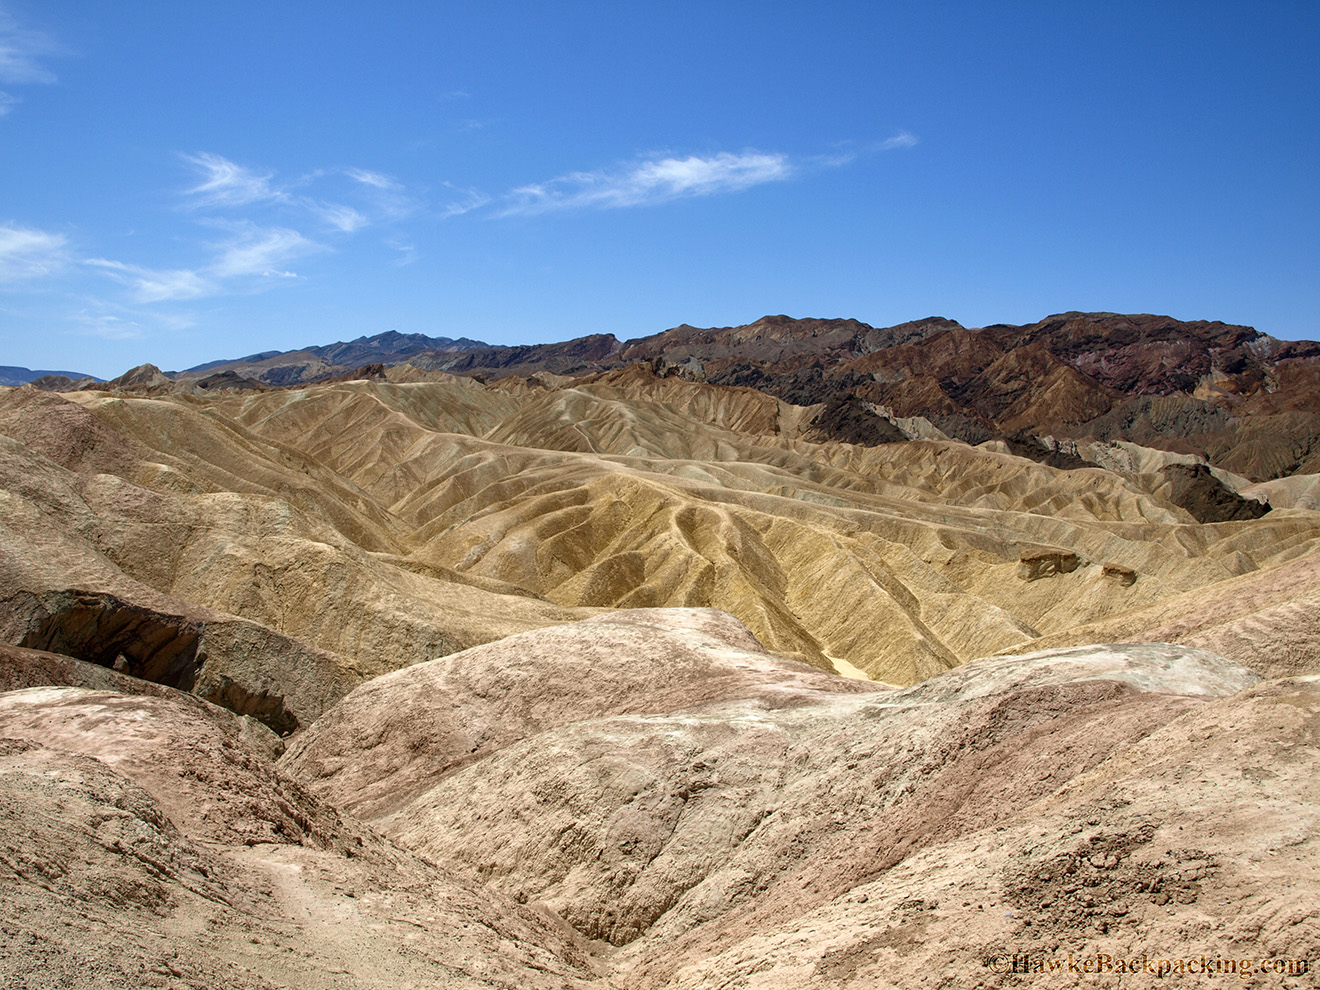 death valley Get death valley information, facts, photos, and more in this death valley national park guide from national geographic.